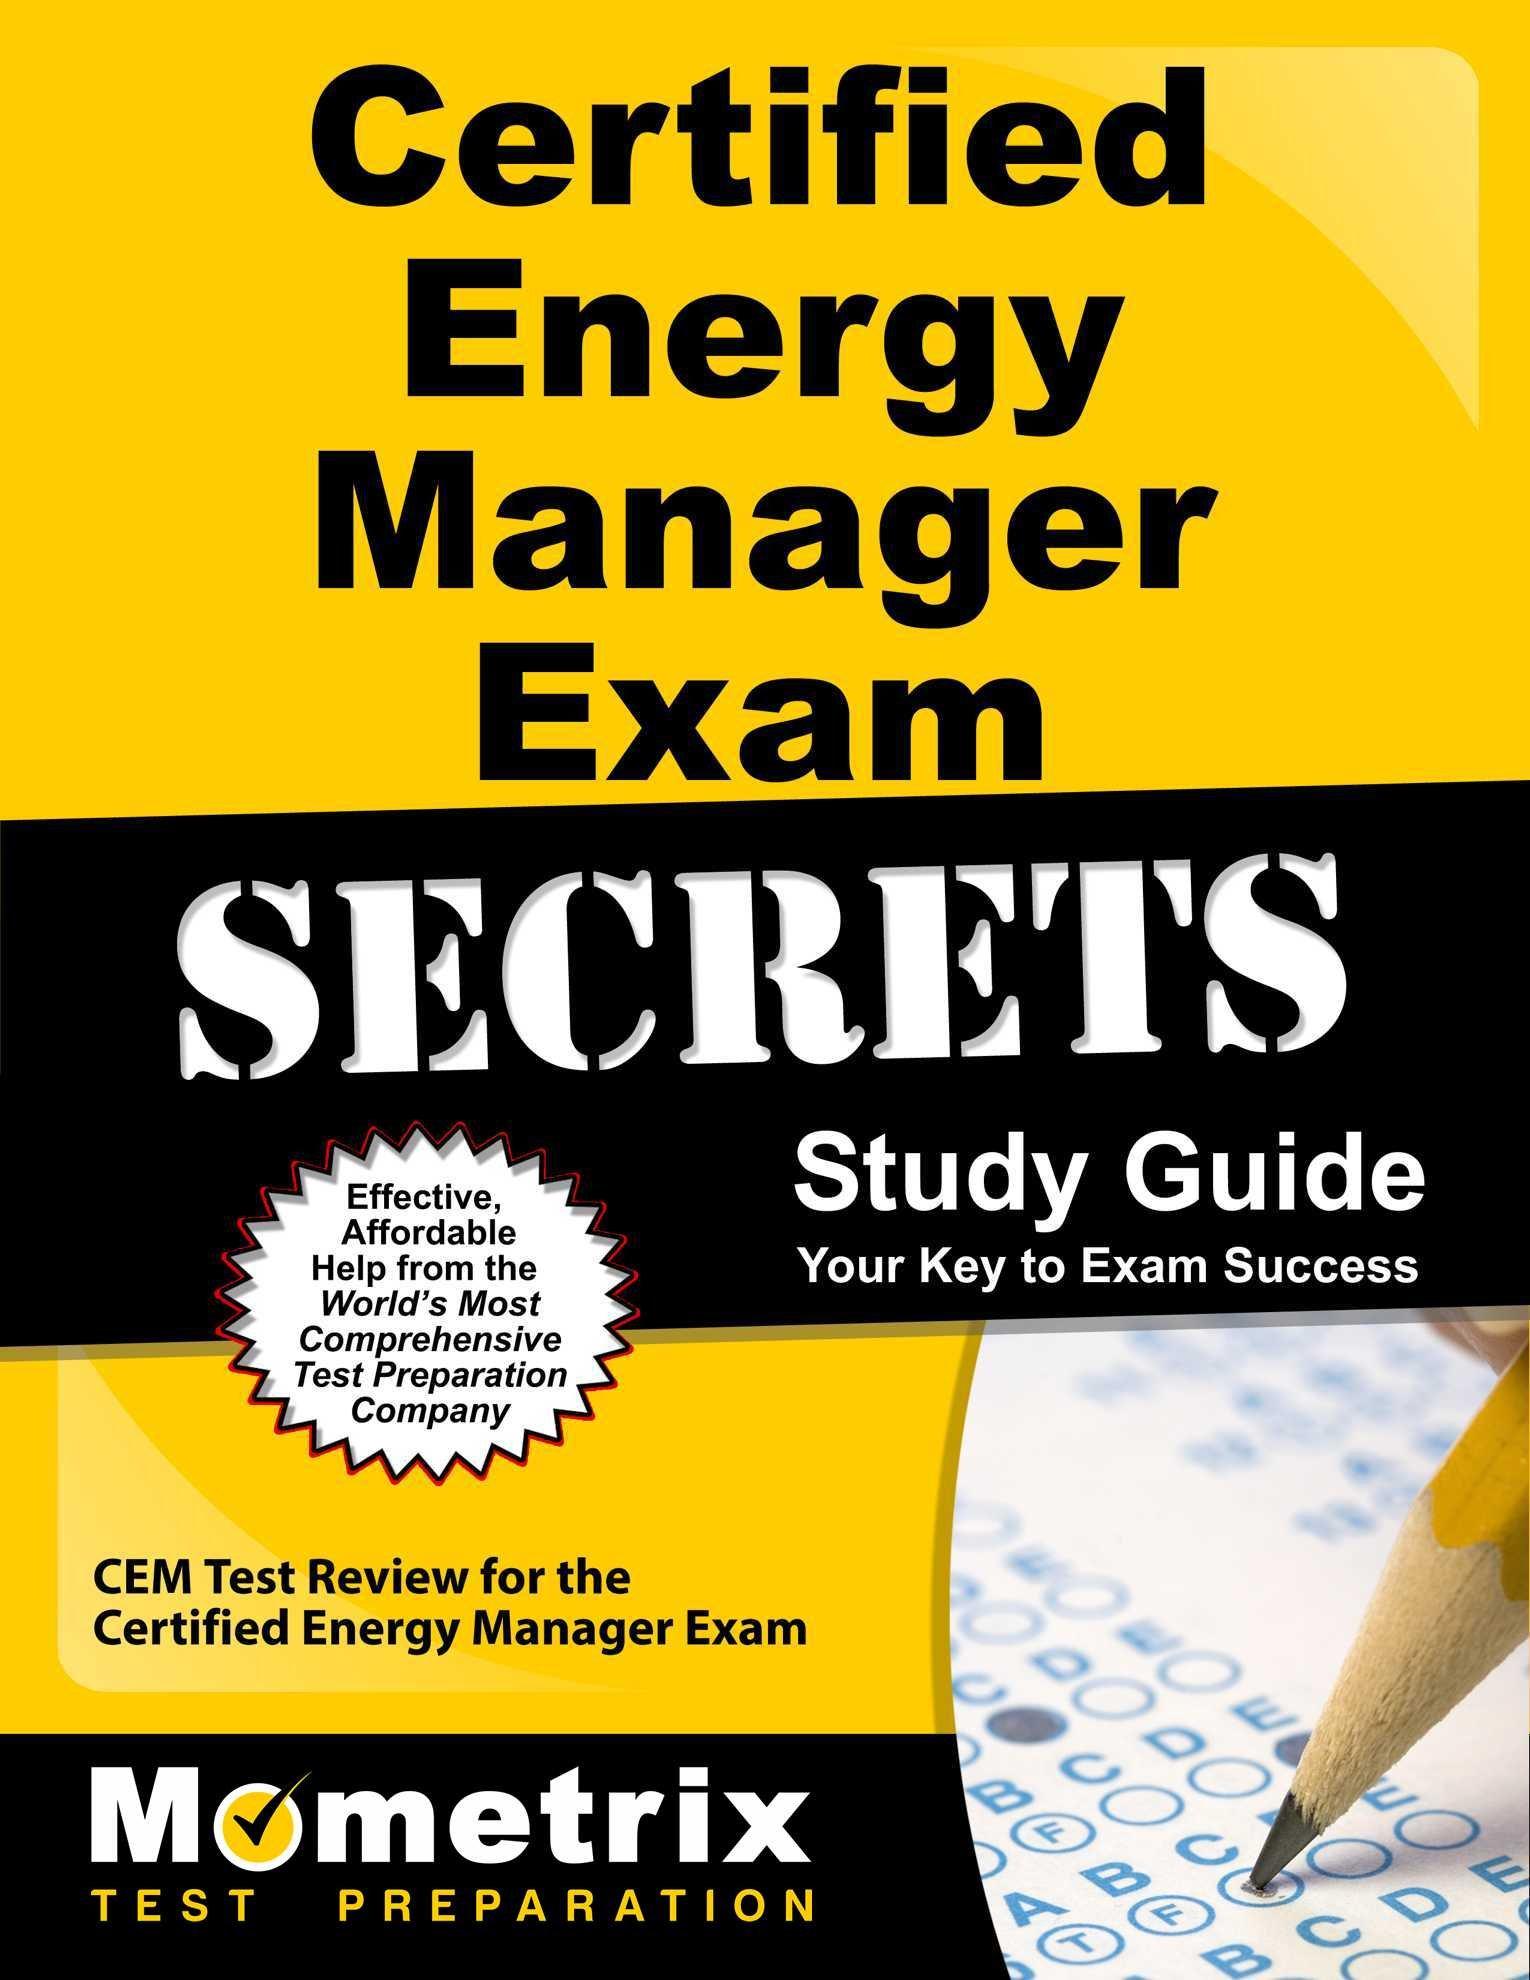 Buy certified energy manager exam secrets study guide cem test buy certified energy manager exam secrets study guide cem test review for the certified energy manager exam your key to exam success book online at low xflitez Images